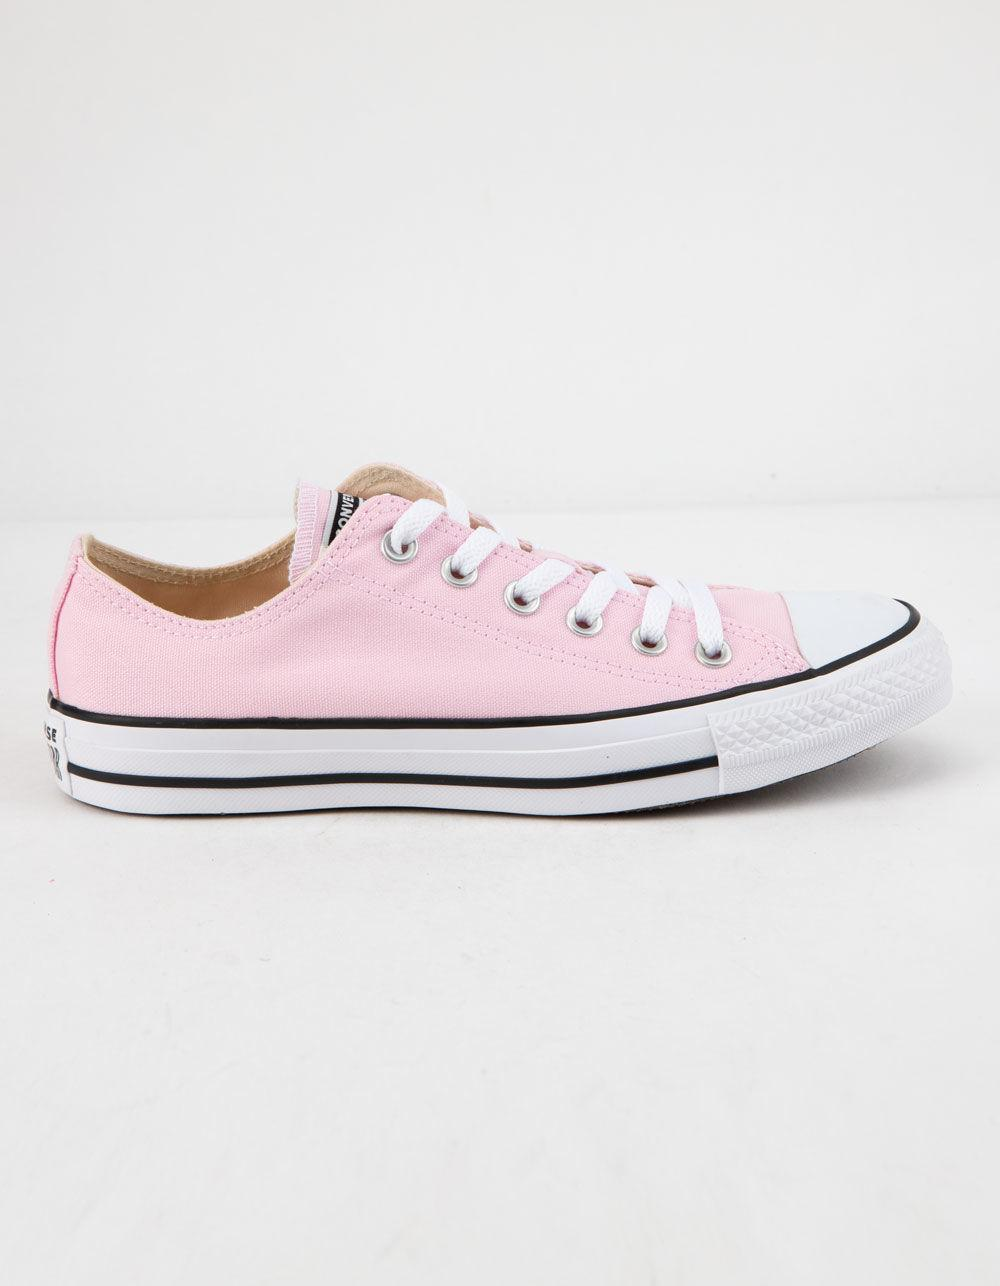 Lyst - Converse Unisex Chuck Taylor Ox Casual Sneakers From Finish ... 3e481f39b